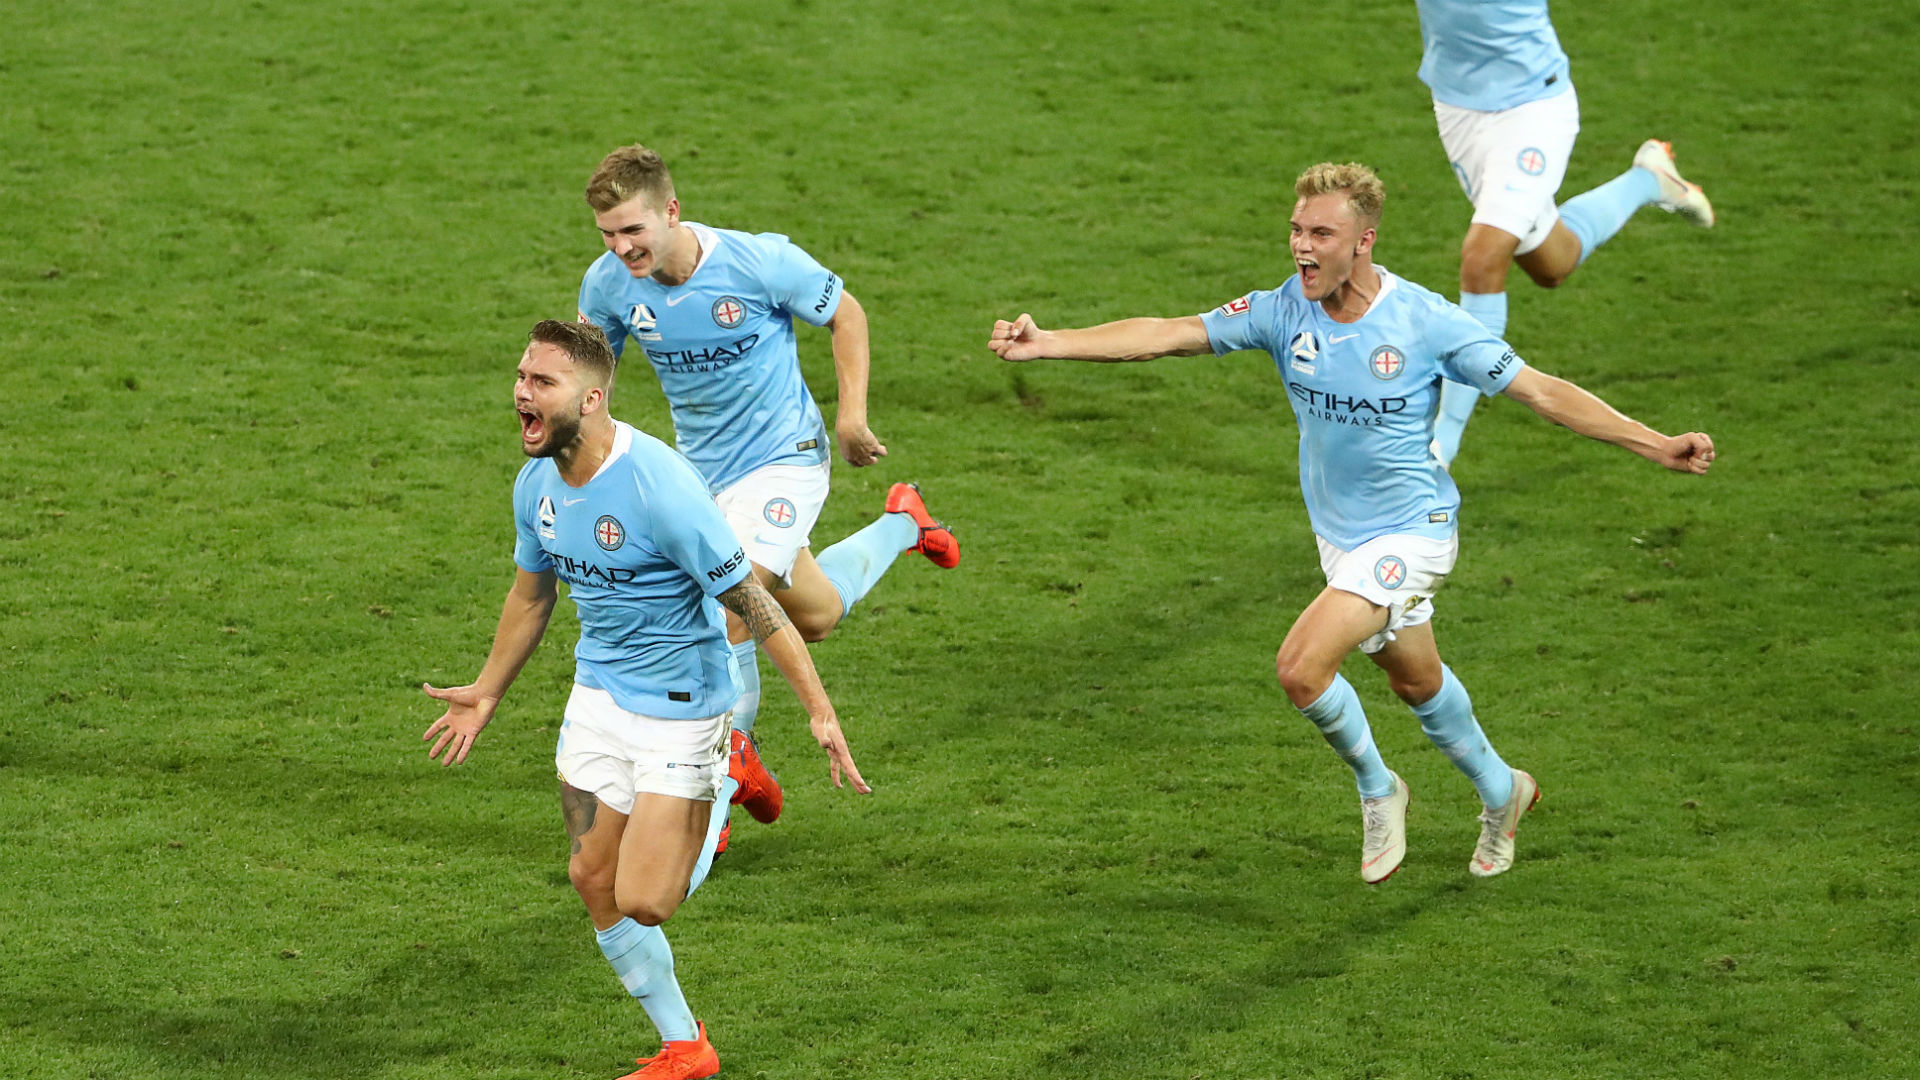 Melbourne City 4 Western Sydney Wanderers 3: Hosts edge thriller with two goals in last six minutes